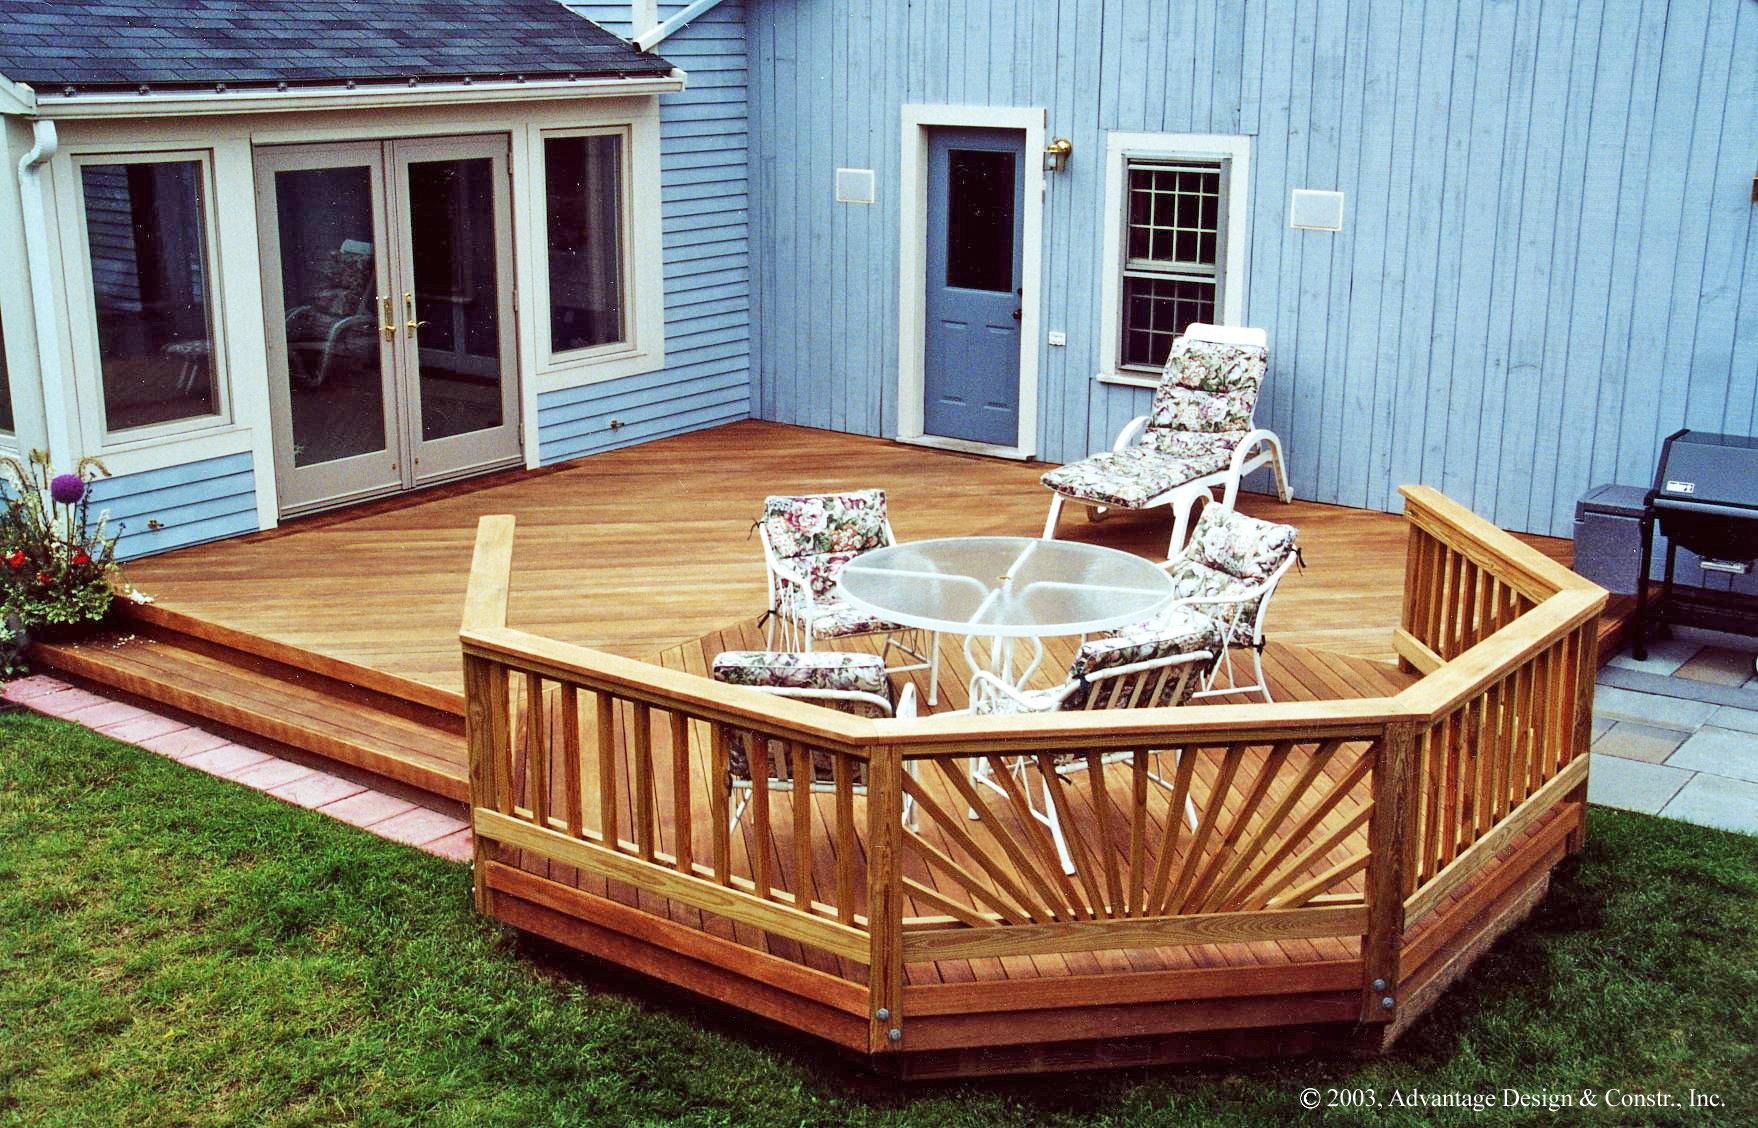 Choosing a Deck or a Patio? - Suburban Boston Decks and ... on Wood Patio Ideas id=94770